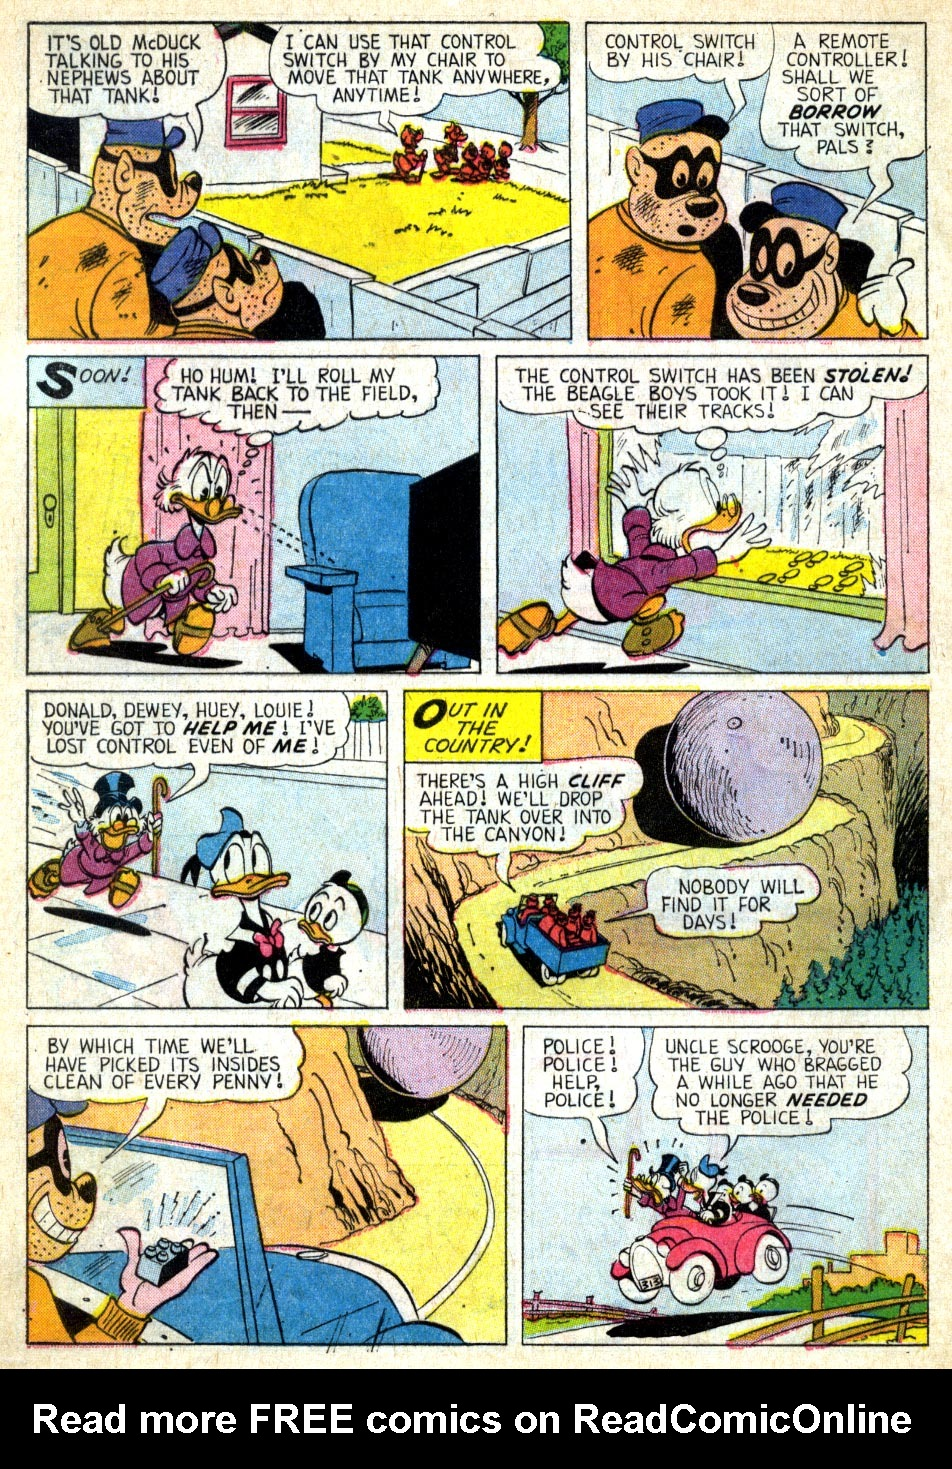 inefree.com/uncle-scroog #366 - English 31